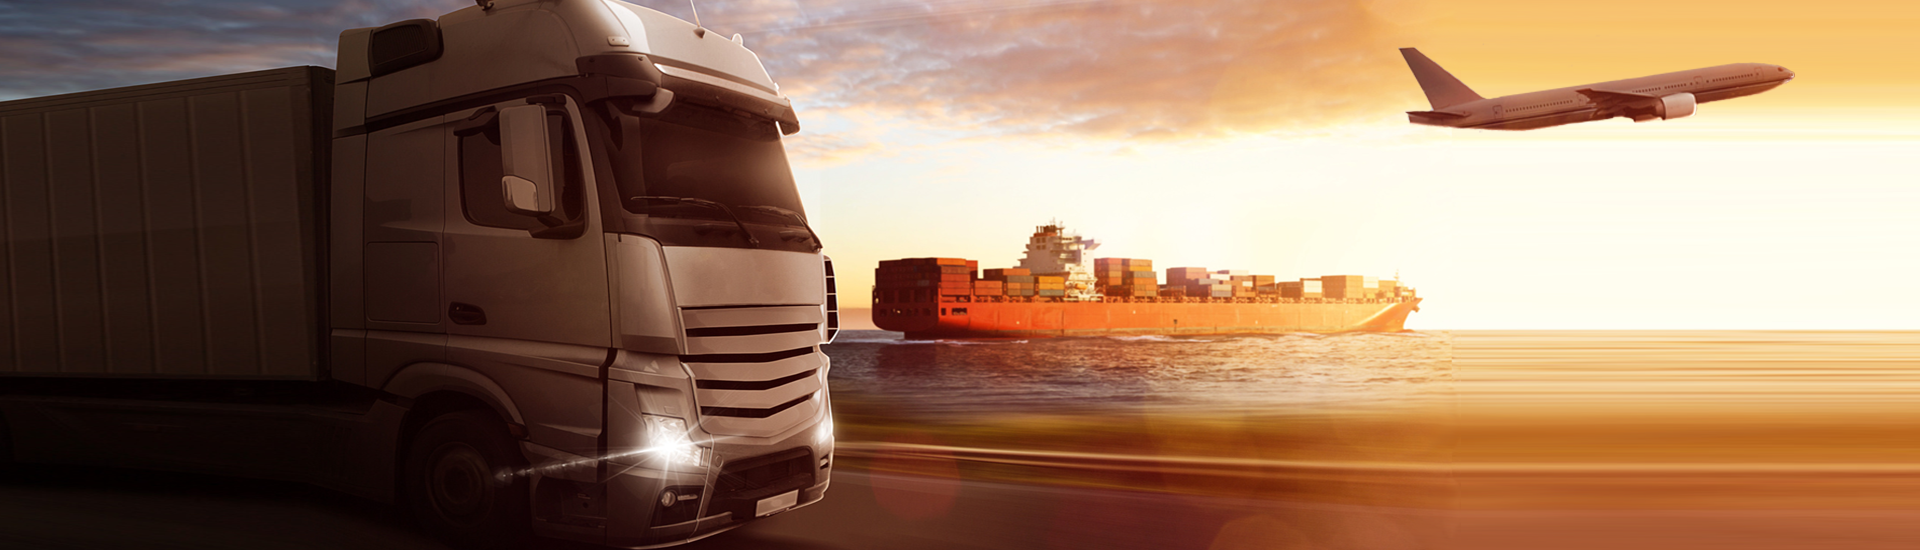 Logistics Service Providers | Westernacher Consulting